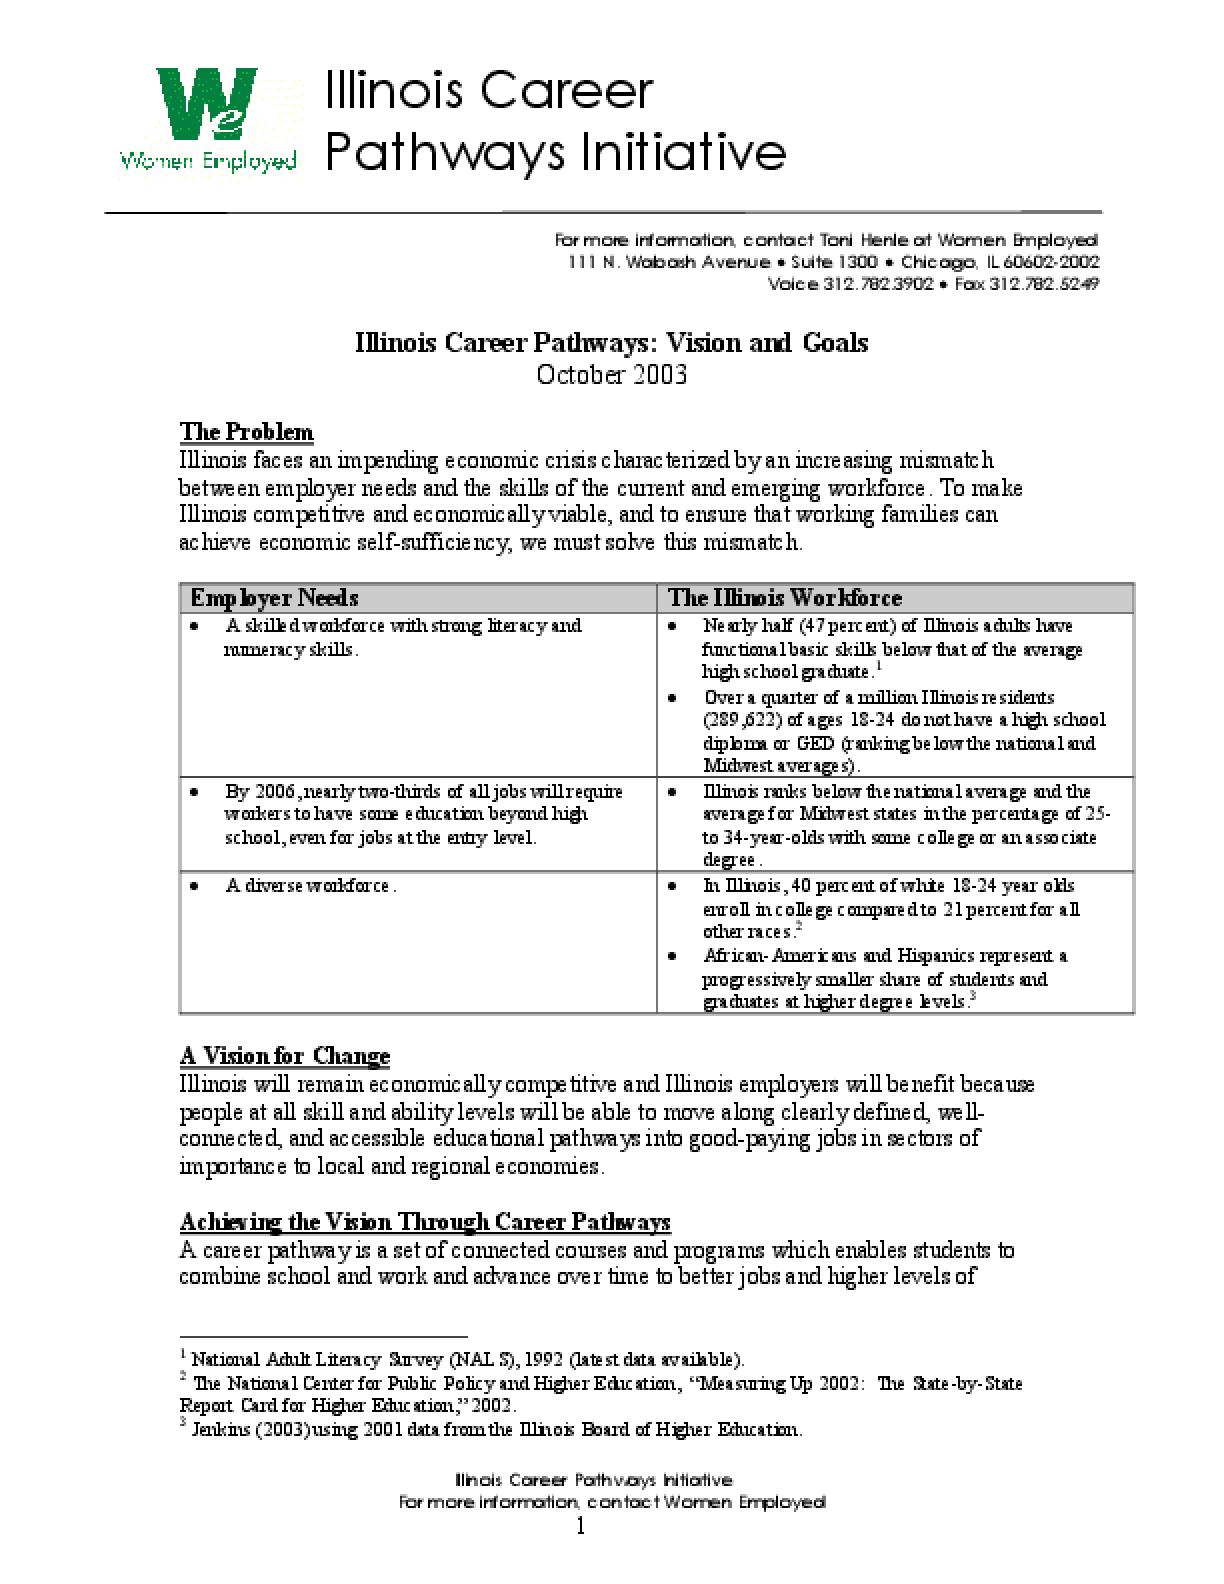 Illinois Career Pathways Initiative: Vision and Goals